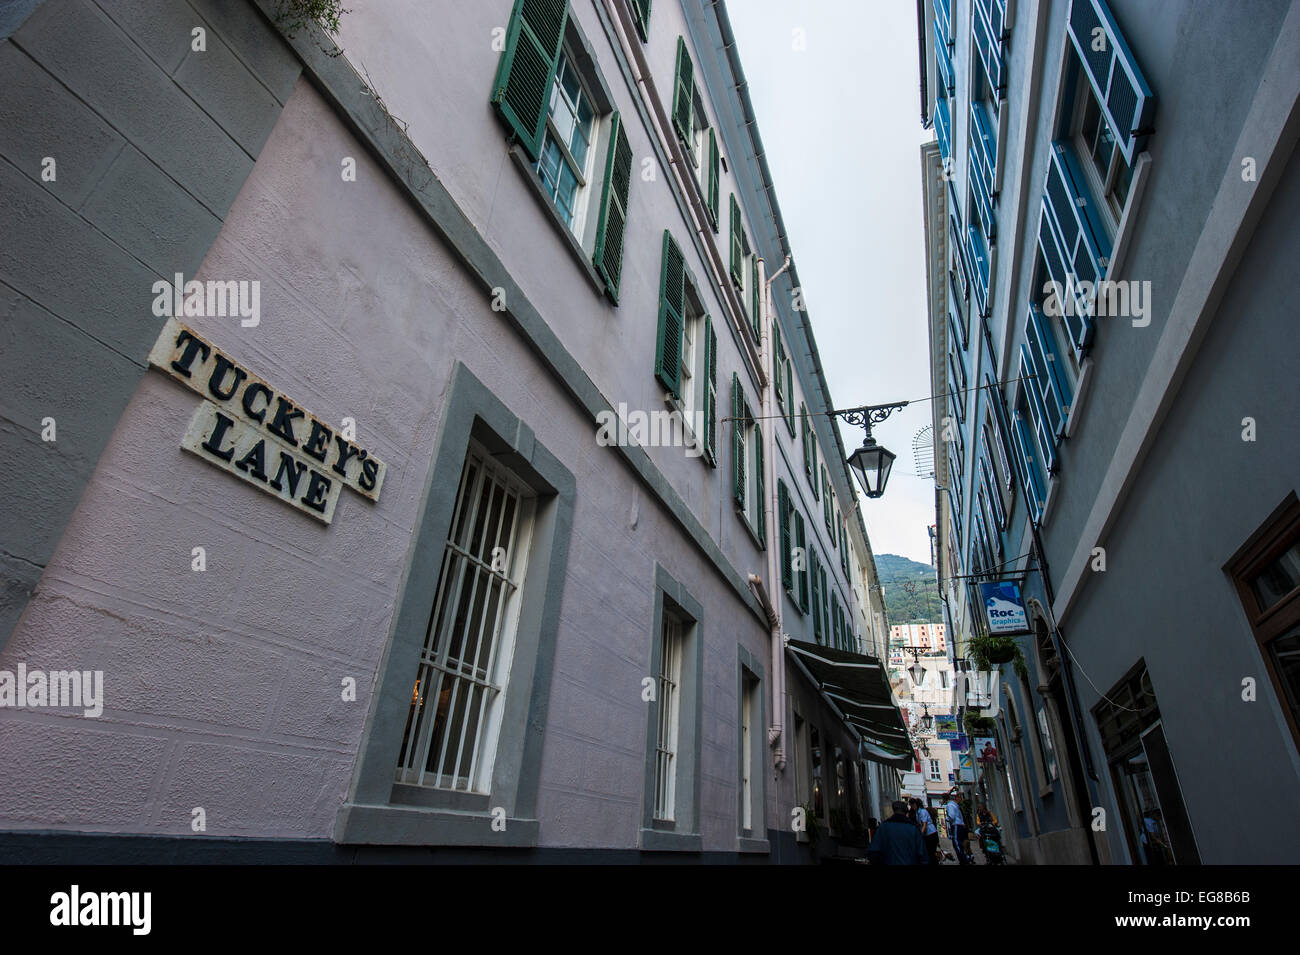 Tuckey's Lane in the old town of Gibraltar, Europe. - Stock Image